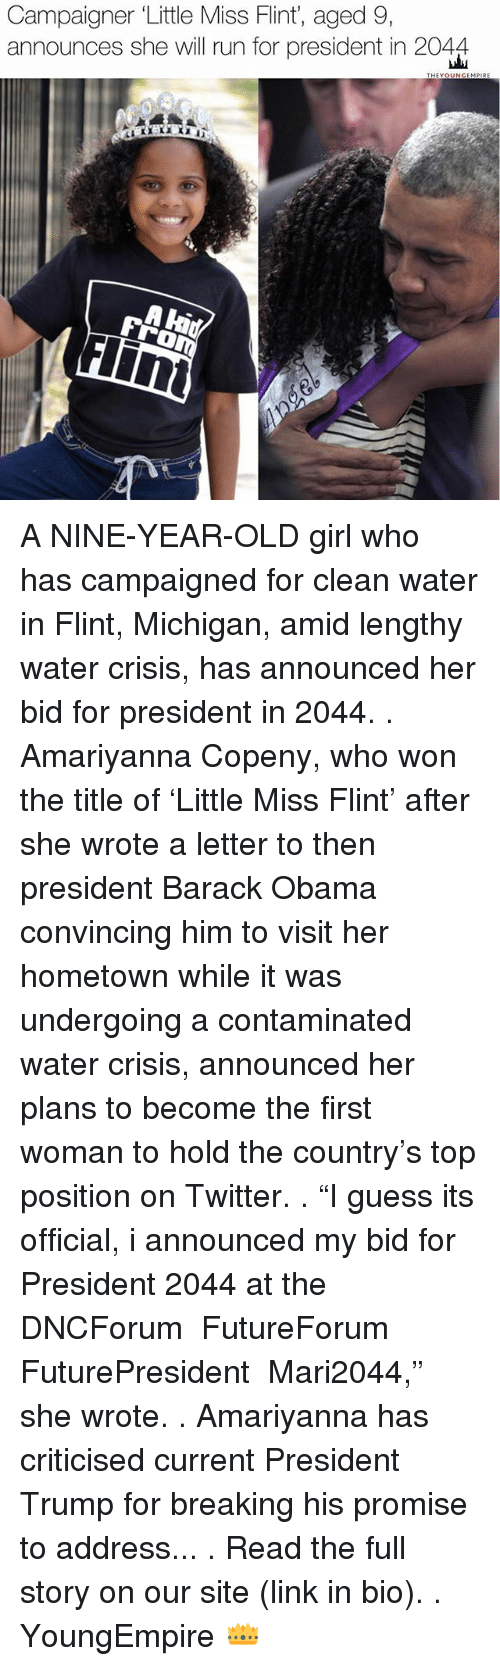 """flint michigan: Campaigner Little Miss Flint, aged 9,  announces she will run for president in 2044  THEYO  MPRE A NINE-YEAR-OLD girl who has campaigned for clean water in Flint, Michigan, amid lengthy water crisis, has announced her bid for president in 2044. . Amariyanna Copeny, who won the title of 'Little Miss Flint' after she wrote a letter to then president Barack Obama convincing him to visit her hometown while it was undergoing a contaminated water crisis, announced her plans to become the first woman to hold the country's top position on Twitter. . """"I guess its official, i announced my bid for President 2044 at the  DNCForum  FutureForum  FuturePresident  Mari2044,"""" she wrote. . Amariyanna has criticised current President Trump for breaking his promise to address... . Read the full story on our site (link in bio). . YoungEmpire 👑"""